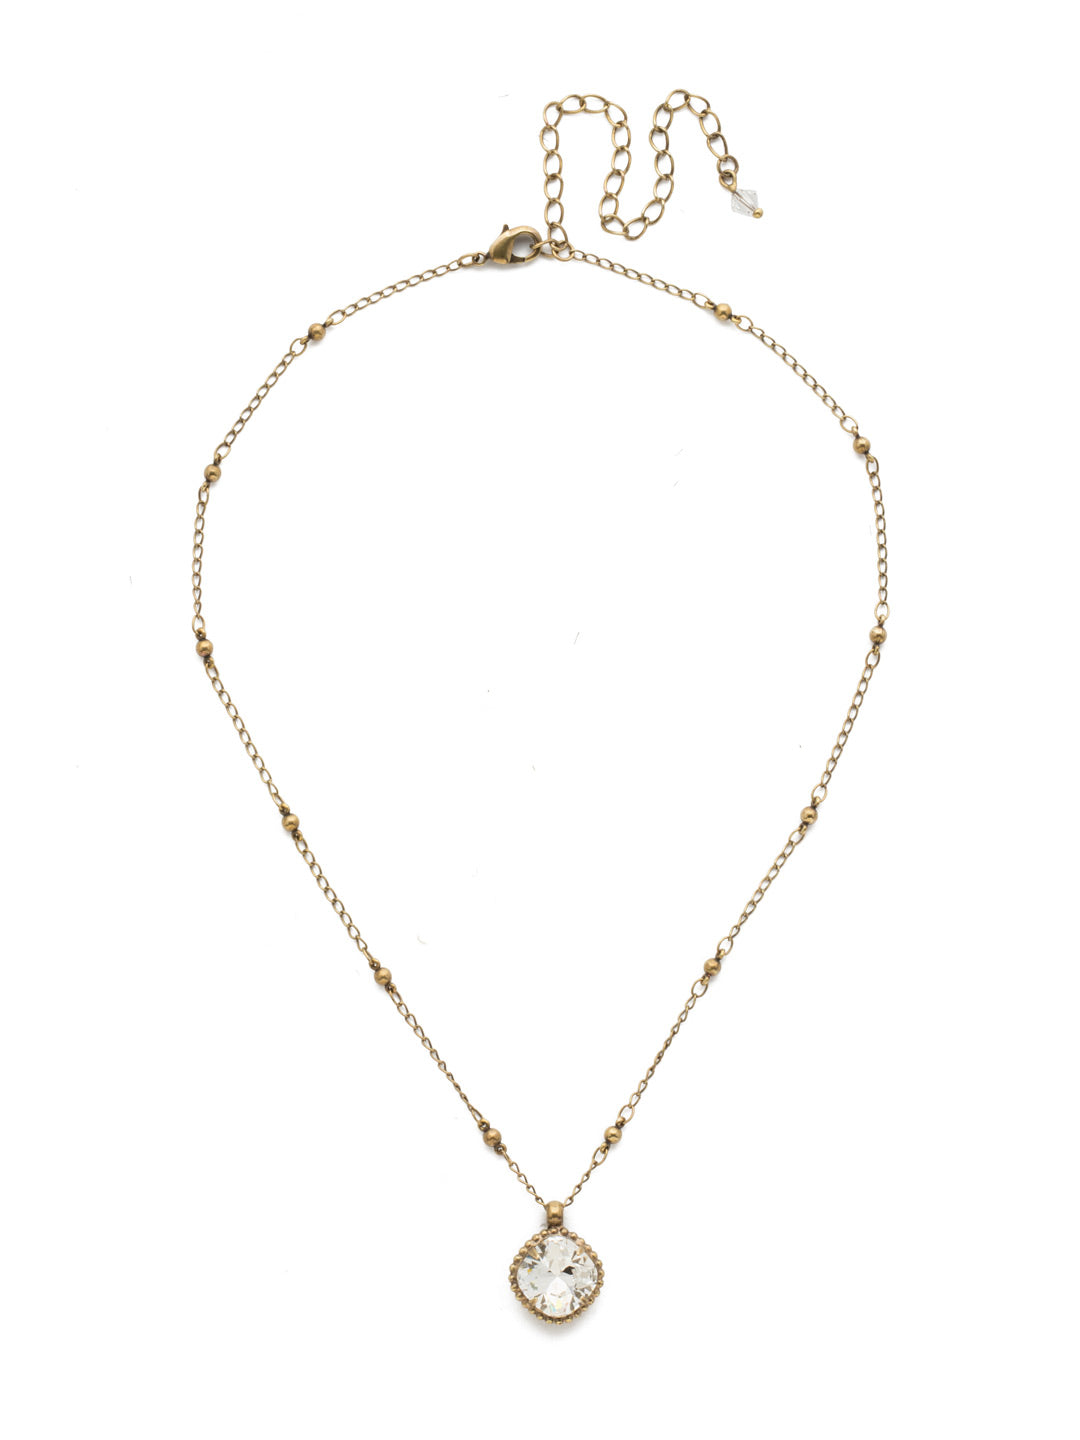 Cushion-Cut Pendant Necklace - NDS50AGCRY